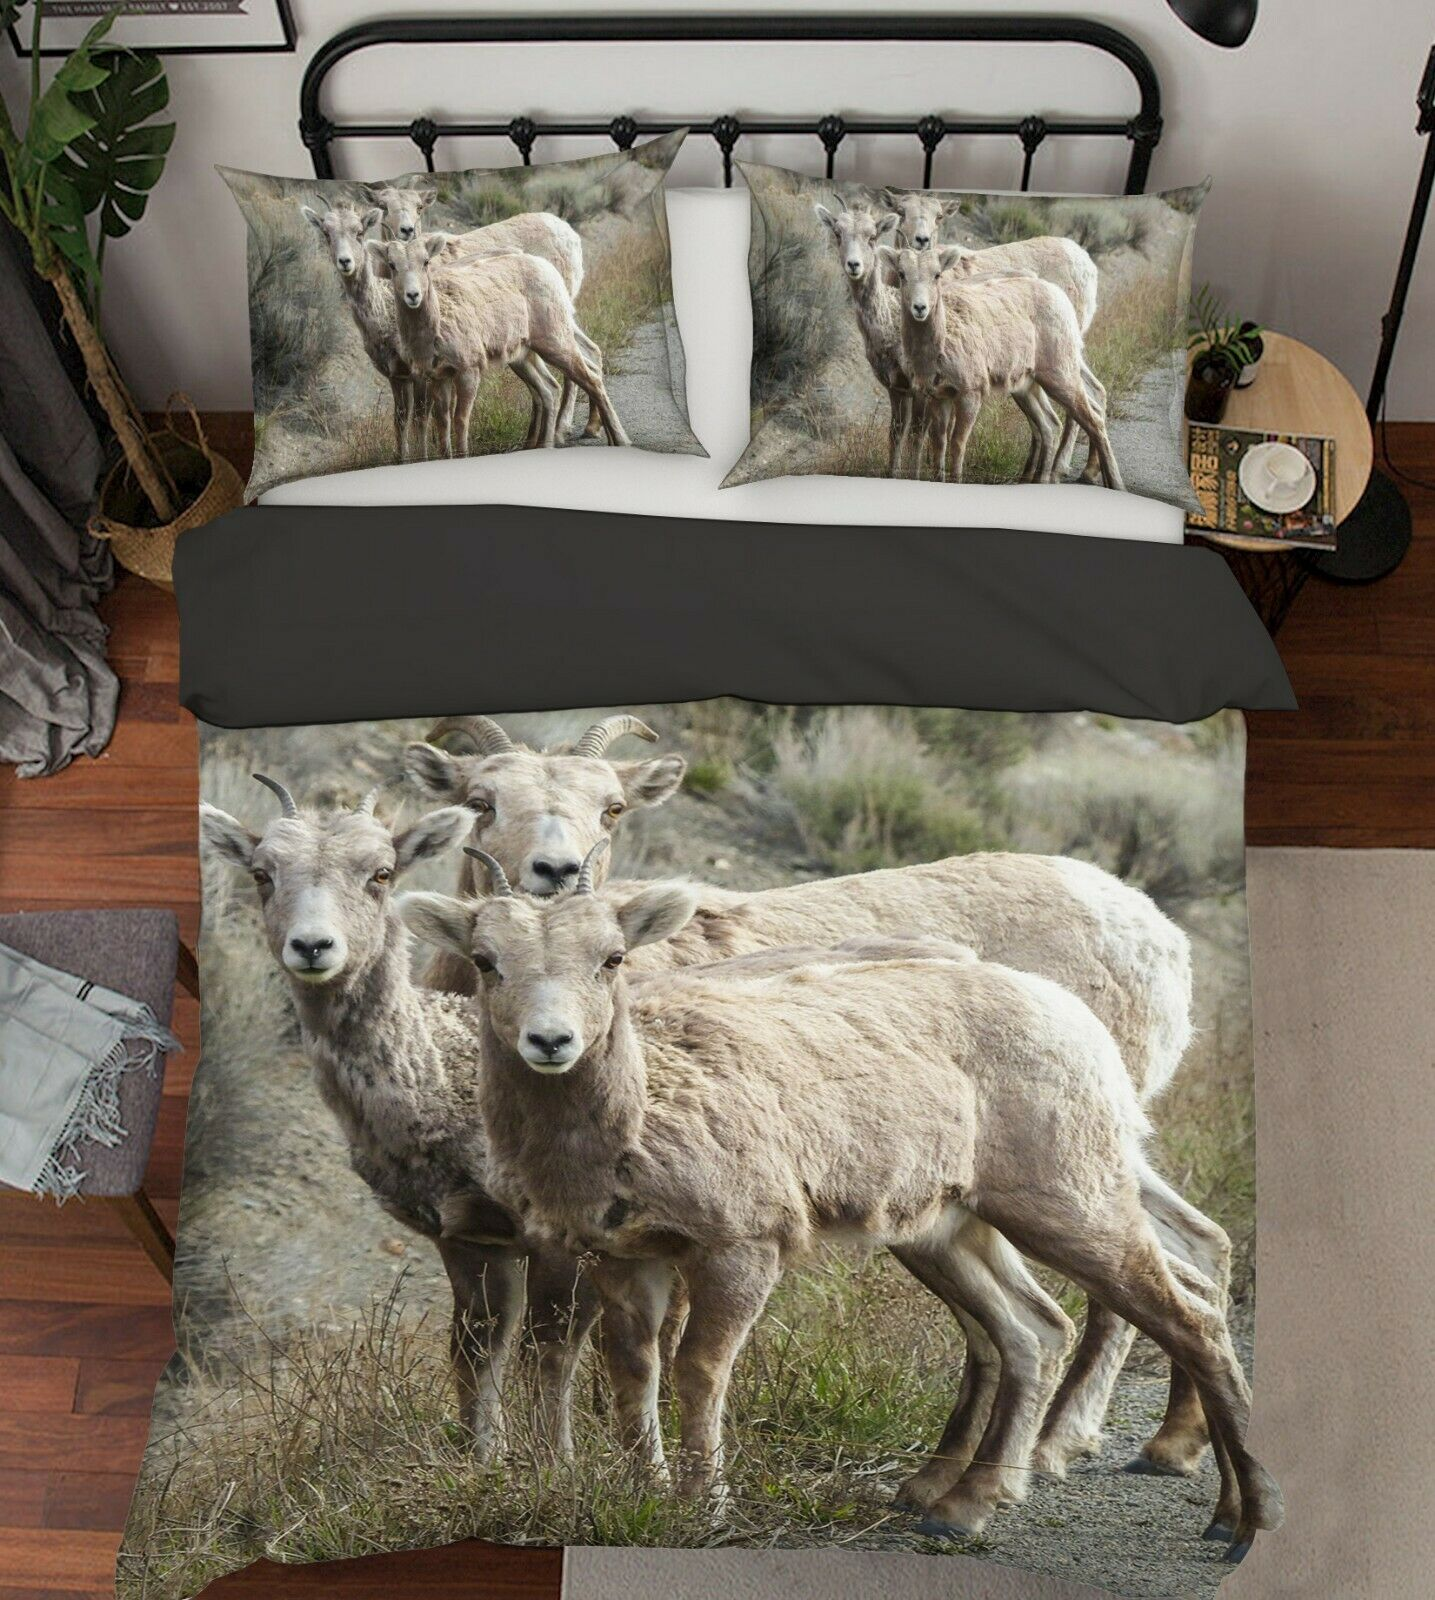 3D Sheep Grass G23 Animal Bed PilFaiblecases Quilt Duvet Cover Set Queen King Wendy